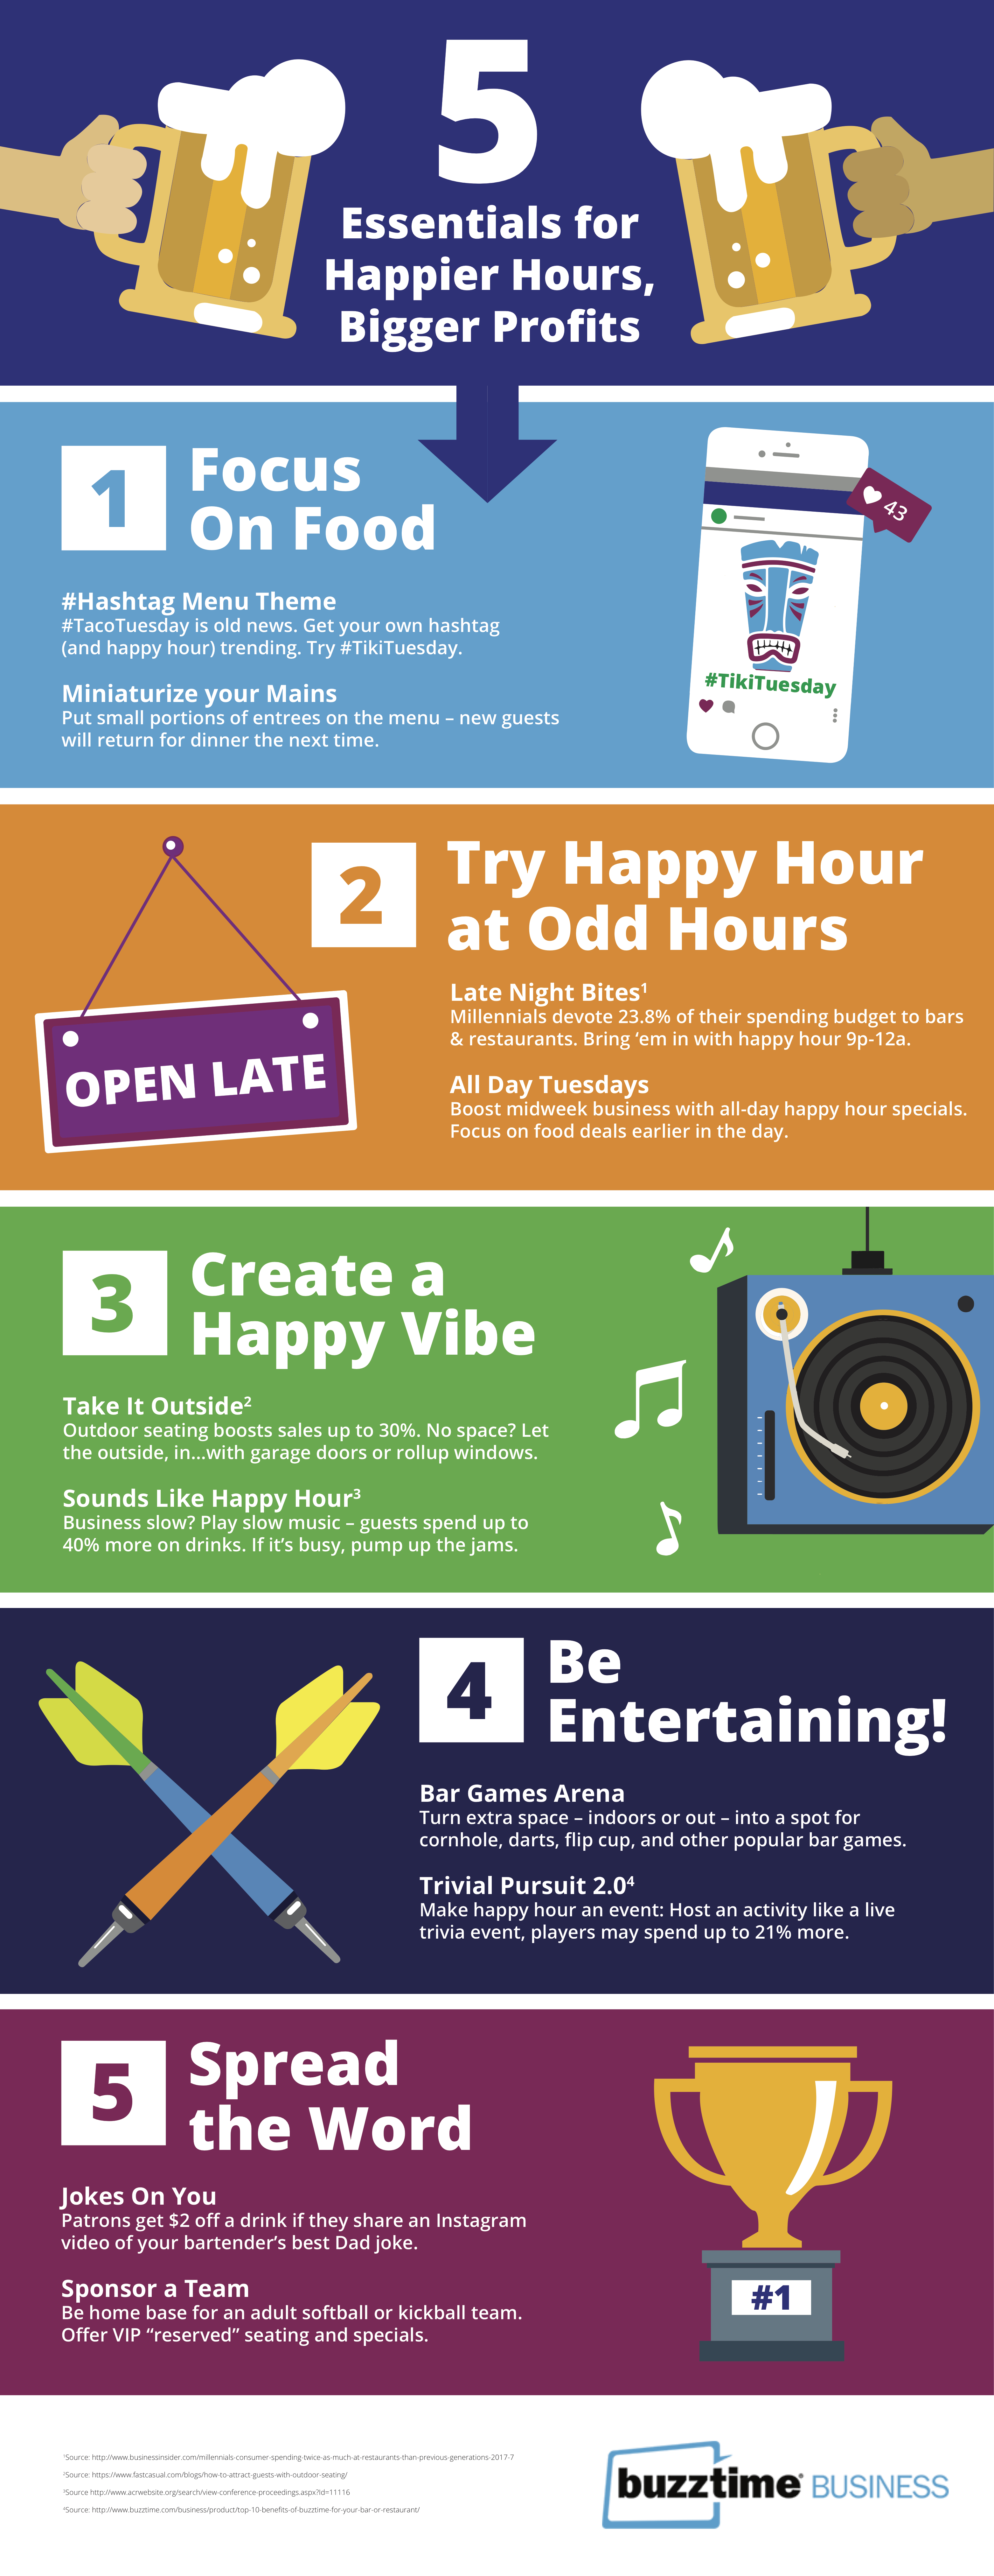 Check Out This Shareable Infographic Of Some Our Favorite Happy Hour Promotions Below